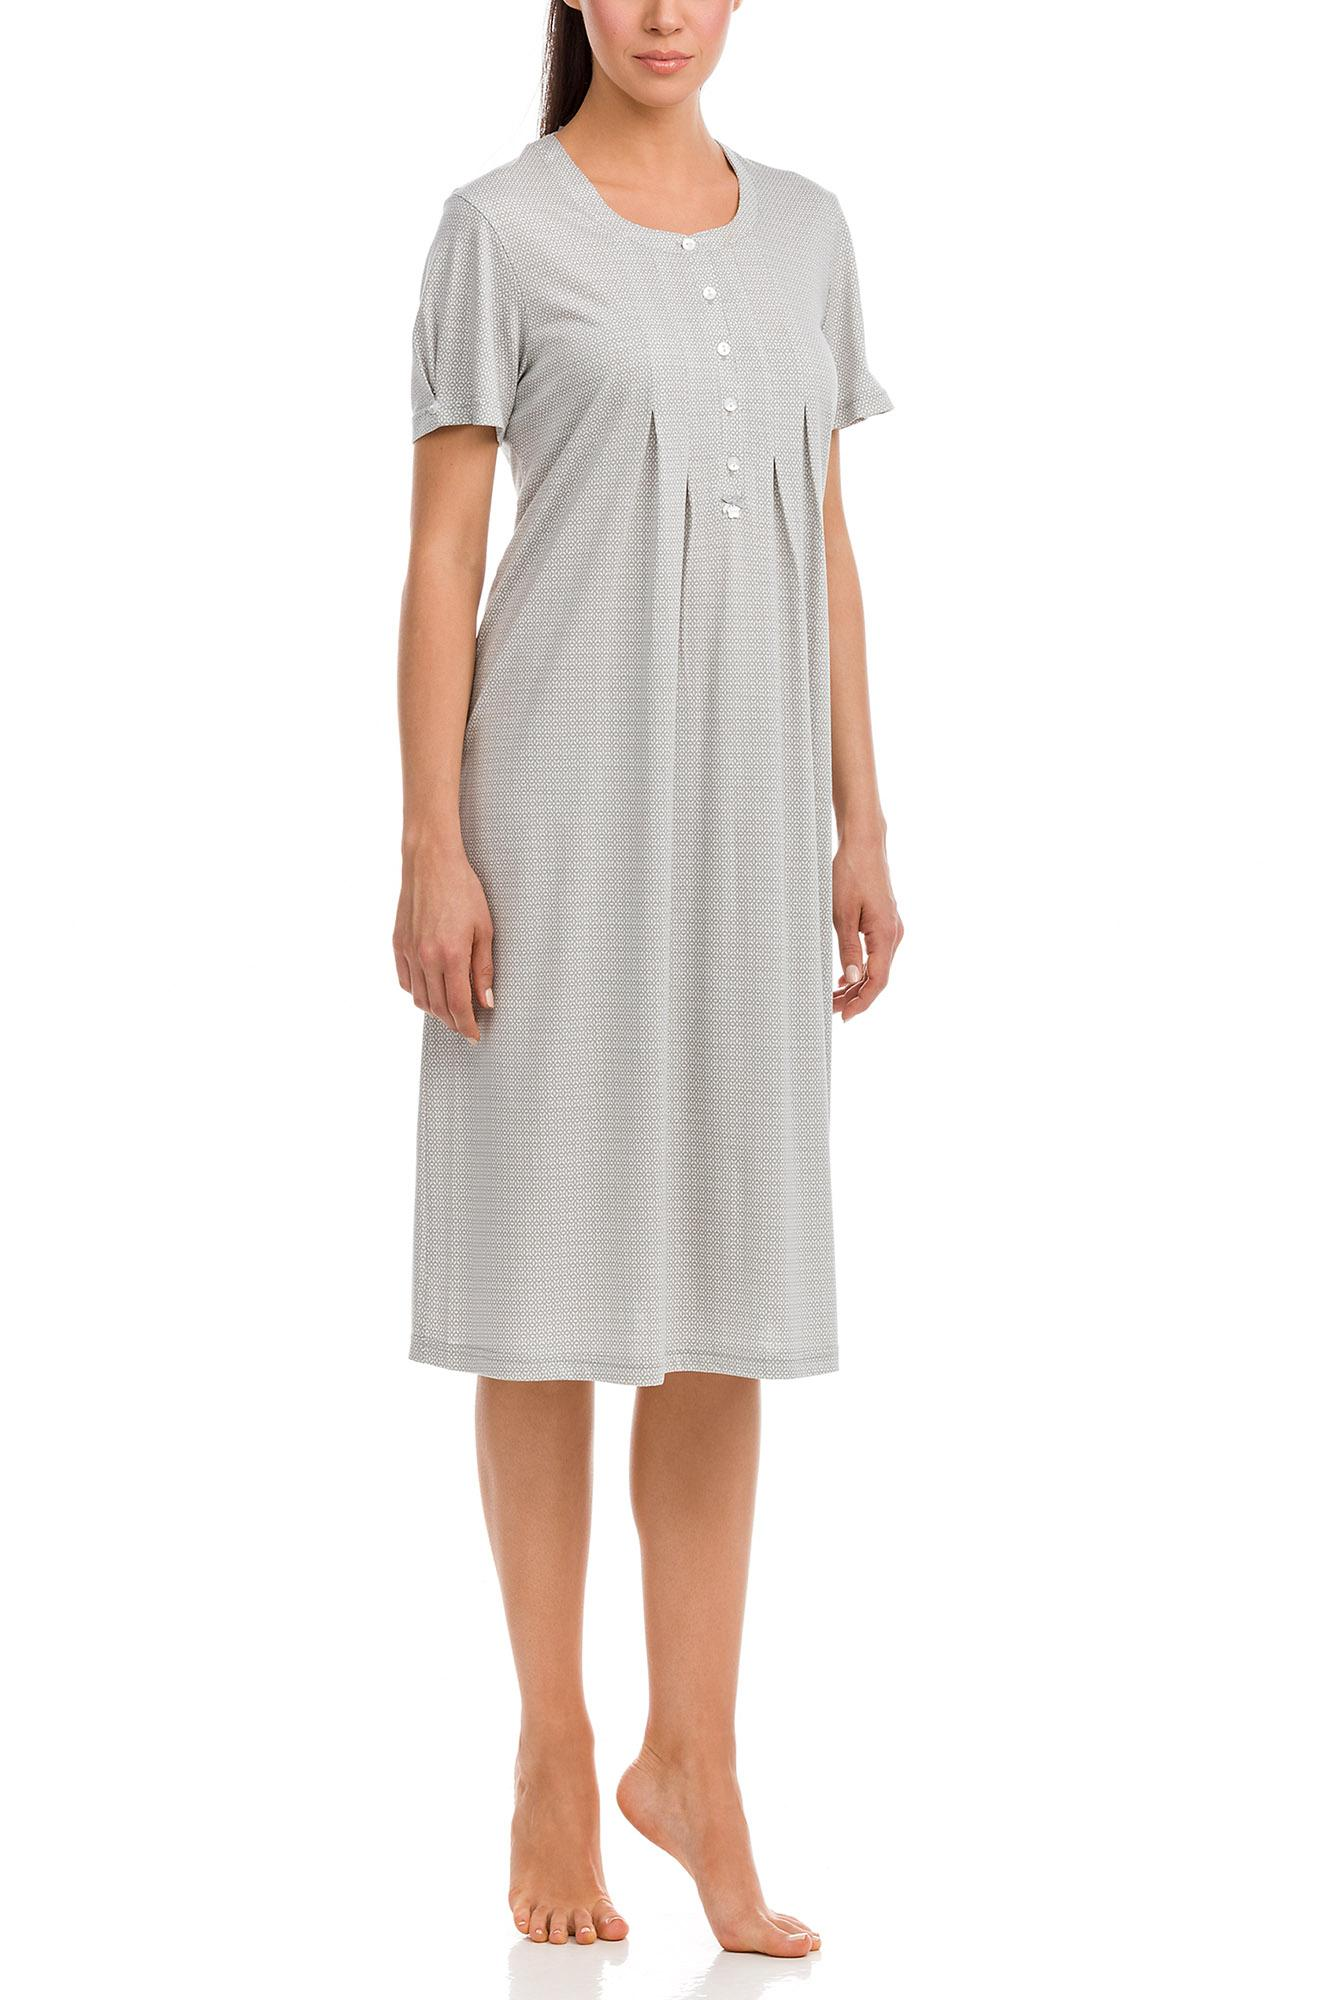 Women's Patterned Nightgown